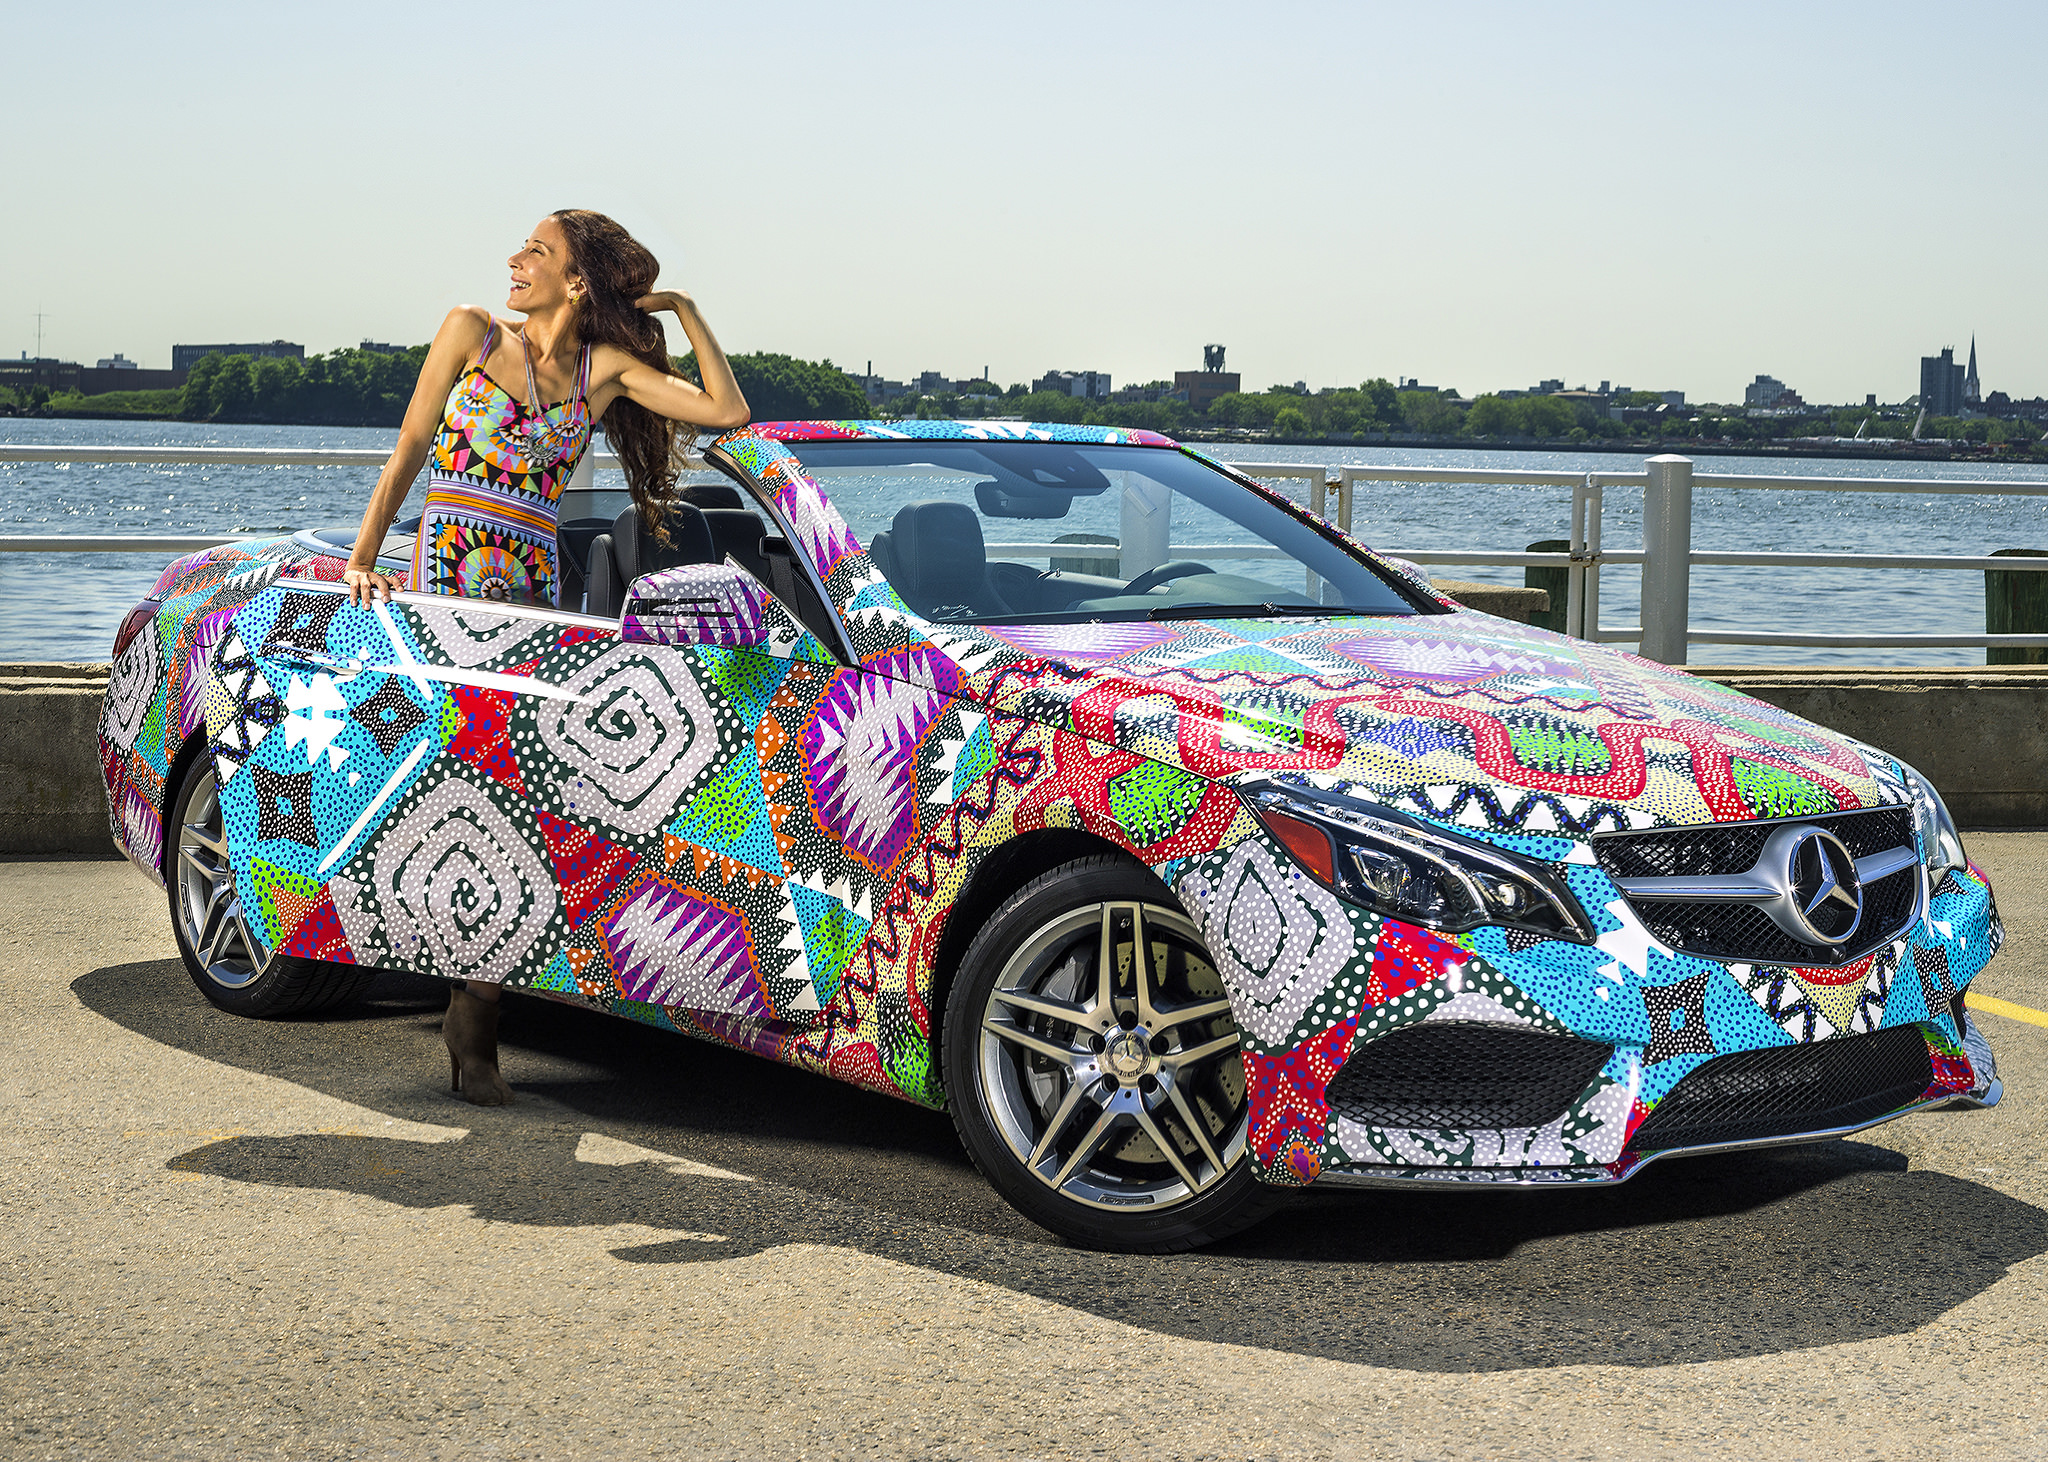 Donne e Motori, le foto migliori! – Fashion car wrapping!